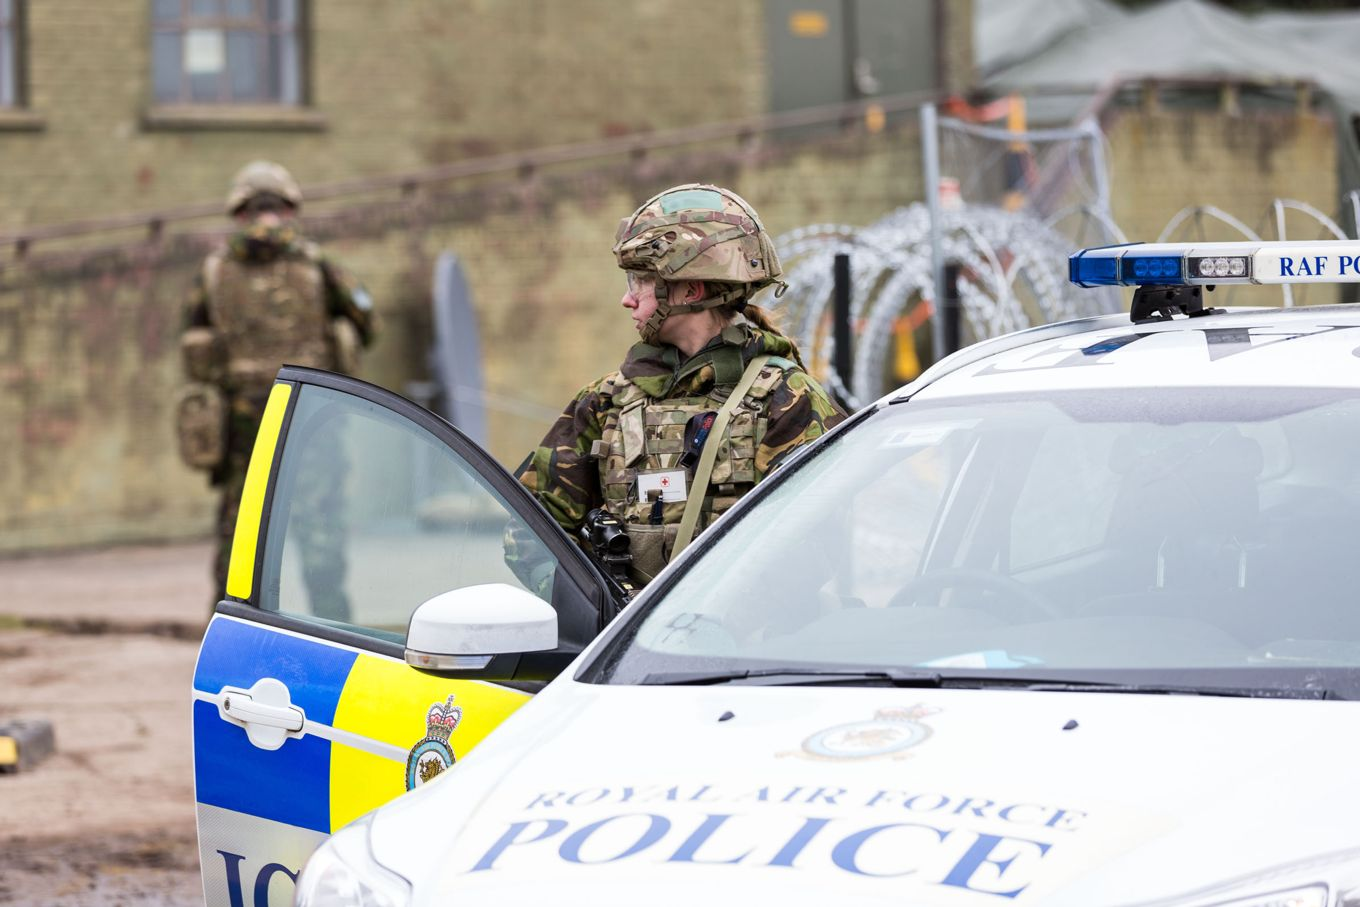 RAF Police carry out a CBRN task during CAPEVAL